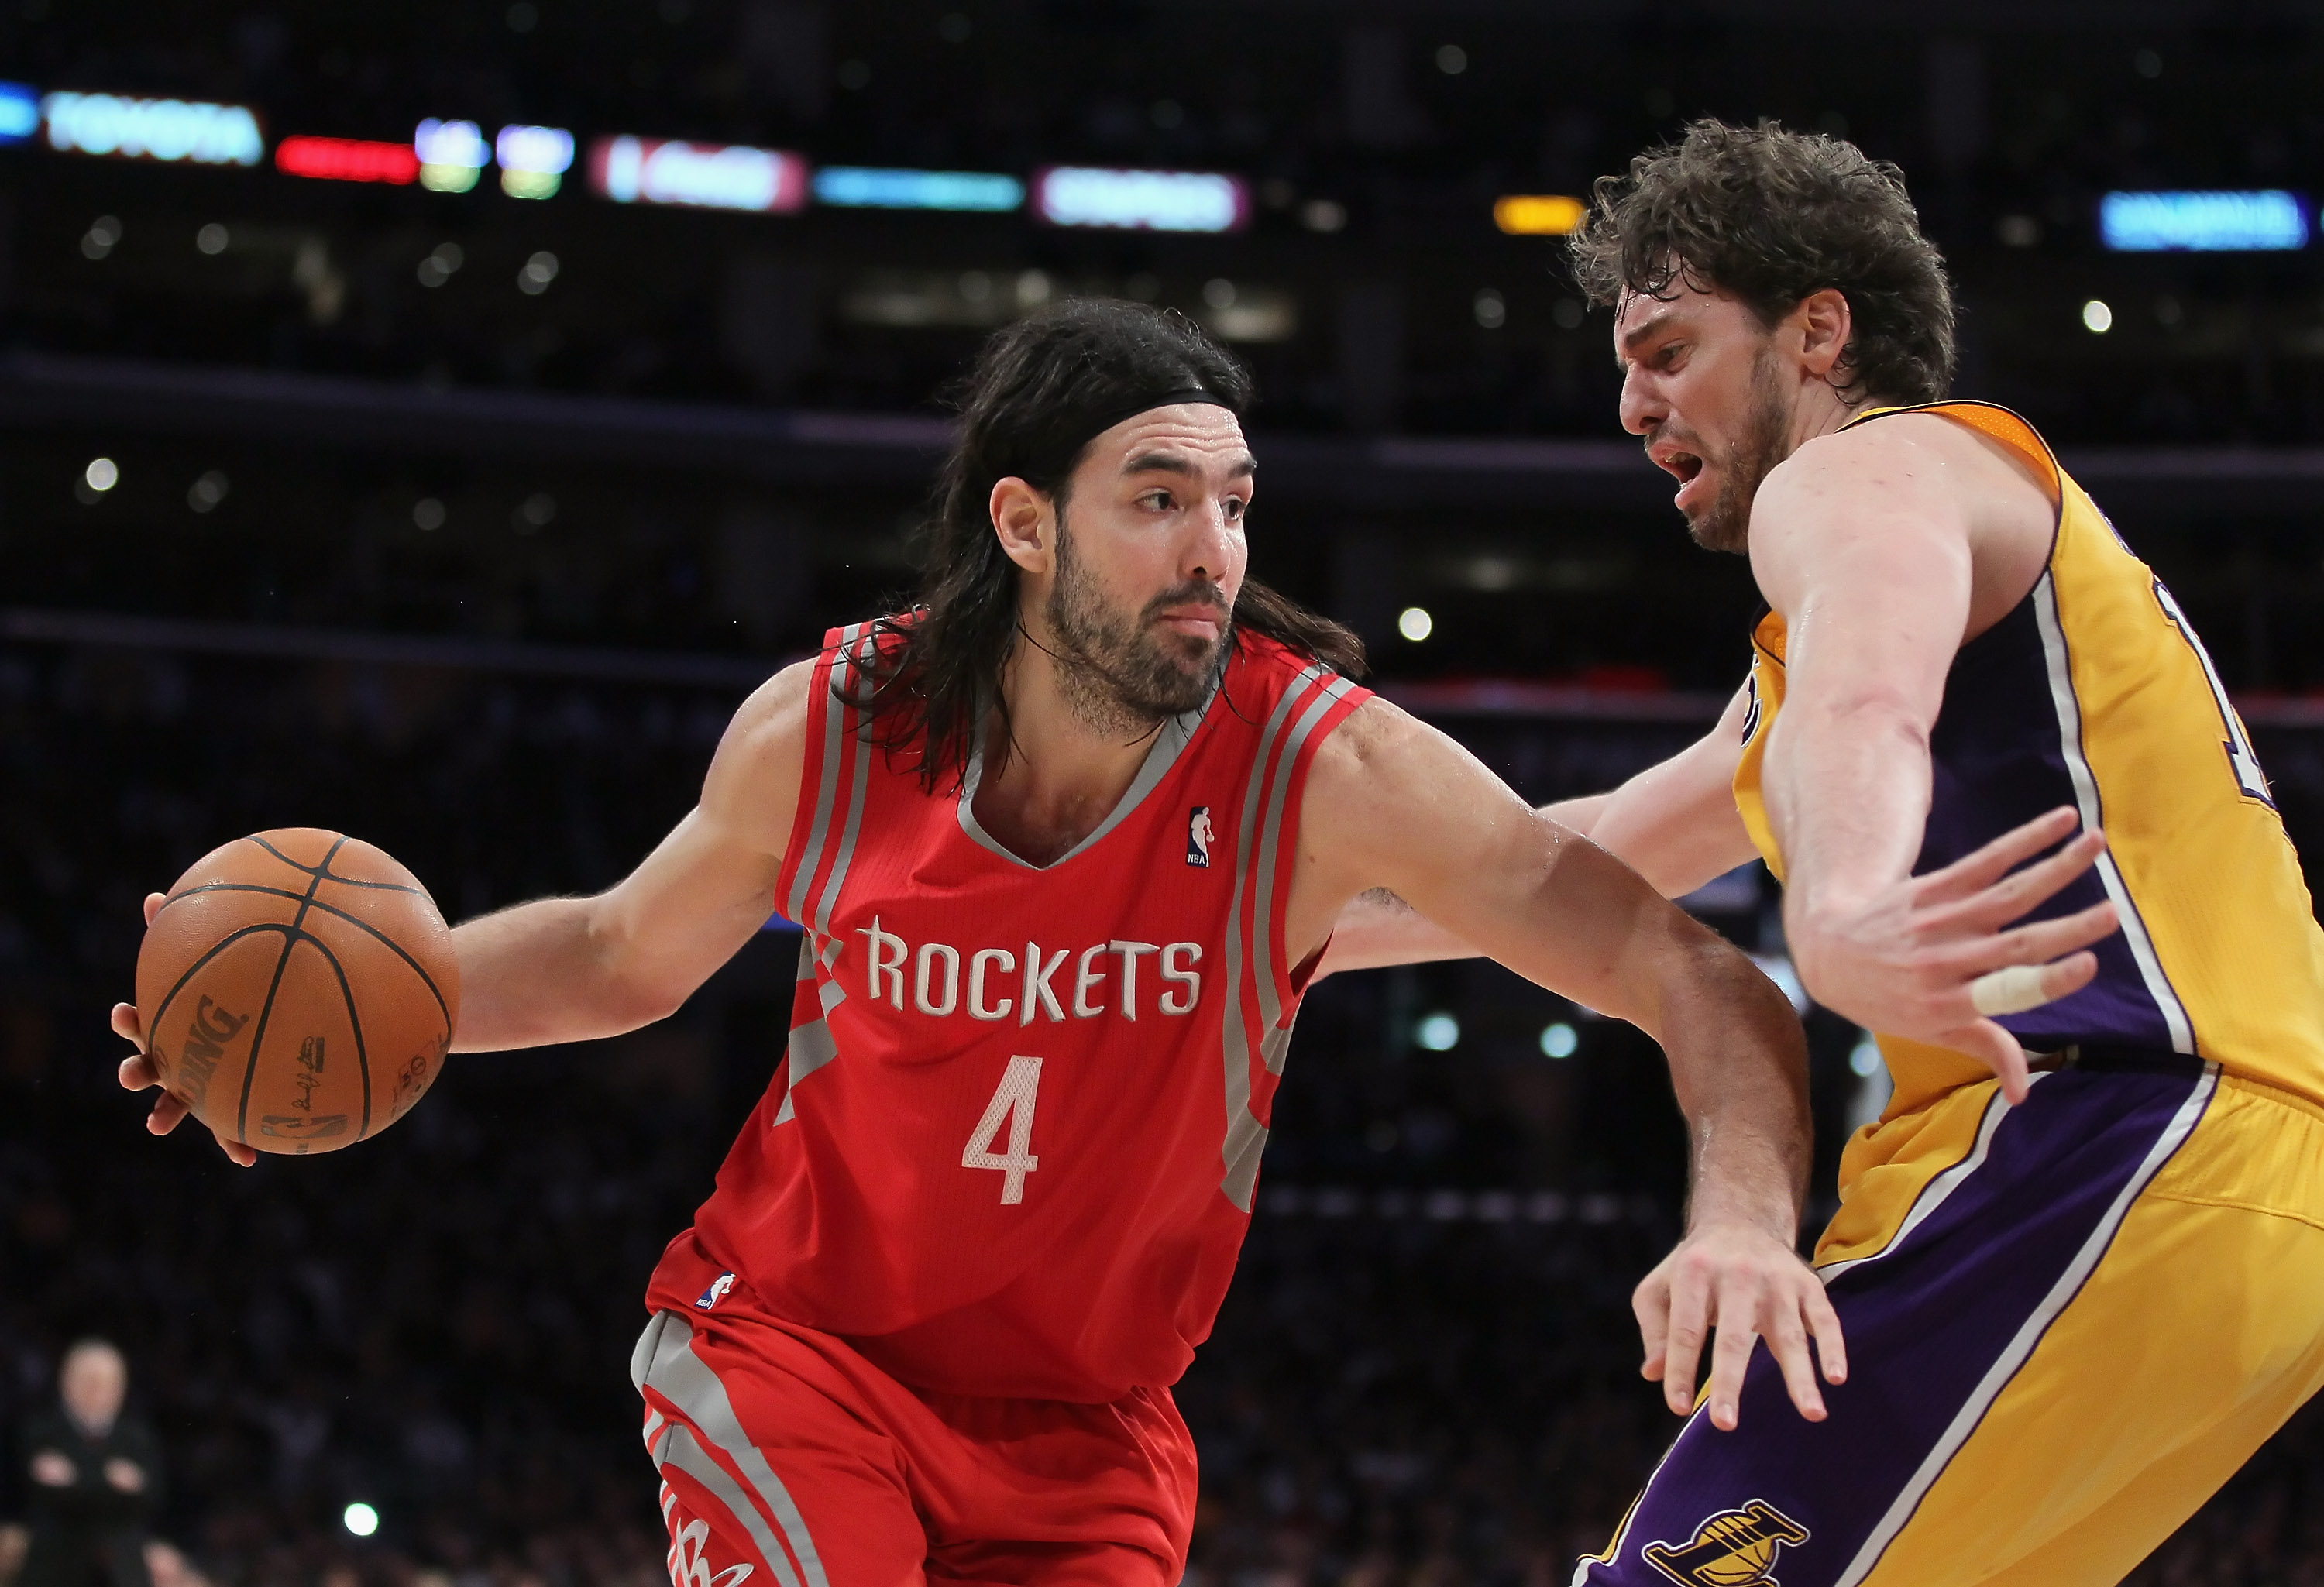 LOS ANGELES, CA - FEBRUARY 01:  Luis Scola #4 of the Houston Rockets is defended by Pau Gasol #16 of the Los Angeles Lakers in the second half at Staples Center on February 1, 2011 in Los Angeles, California. The Lakers defeated the Rockets 114-106. NOTE